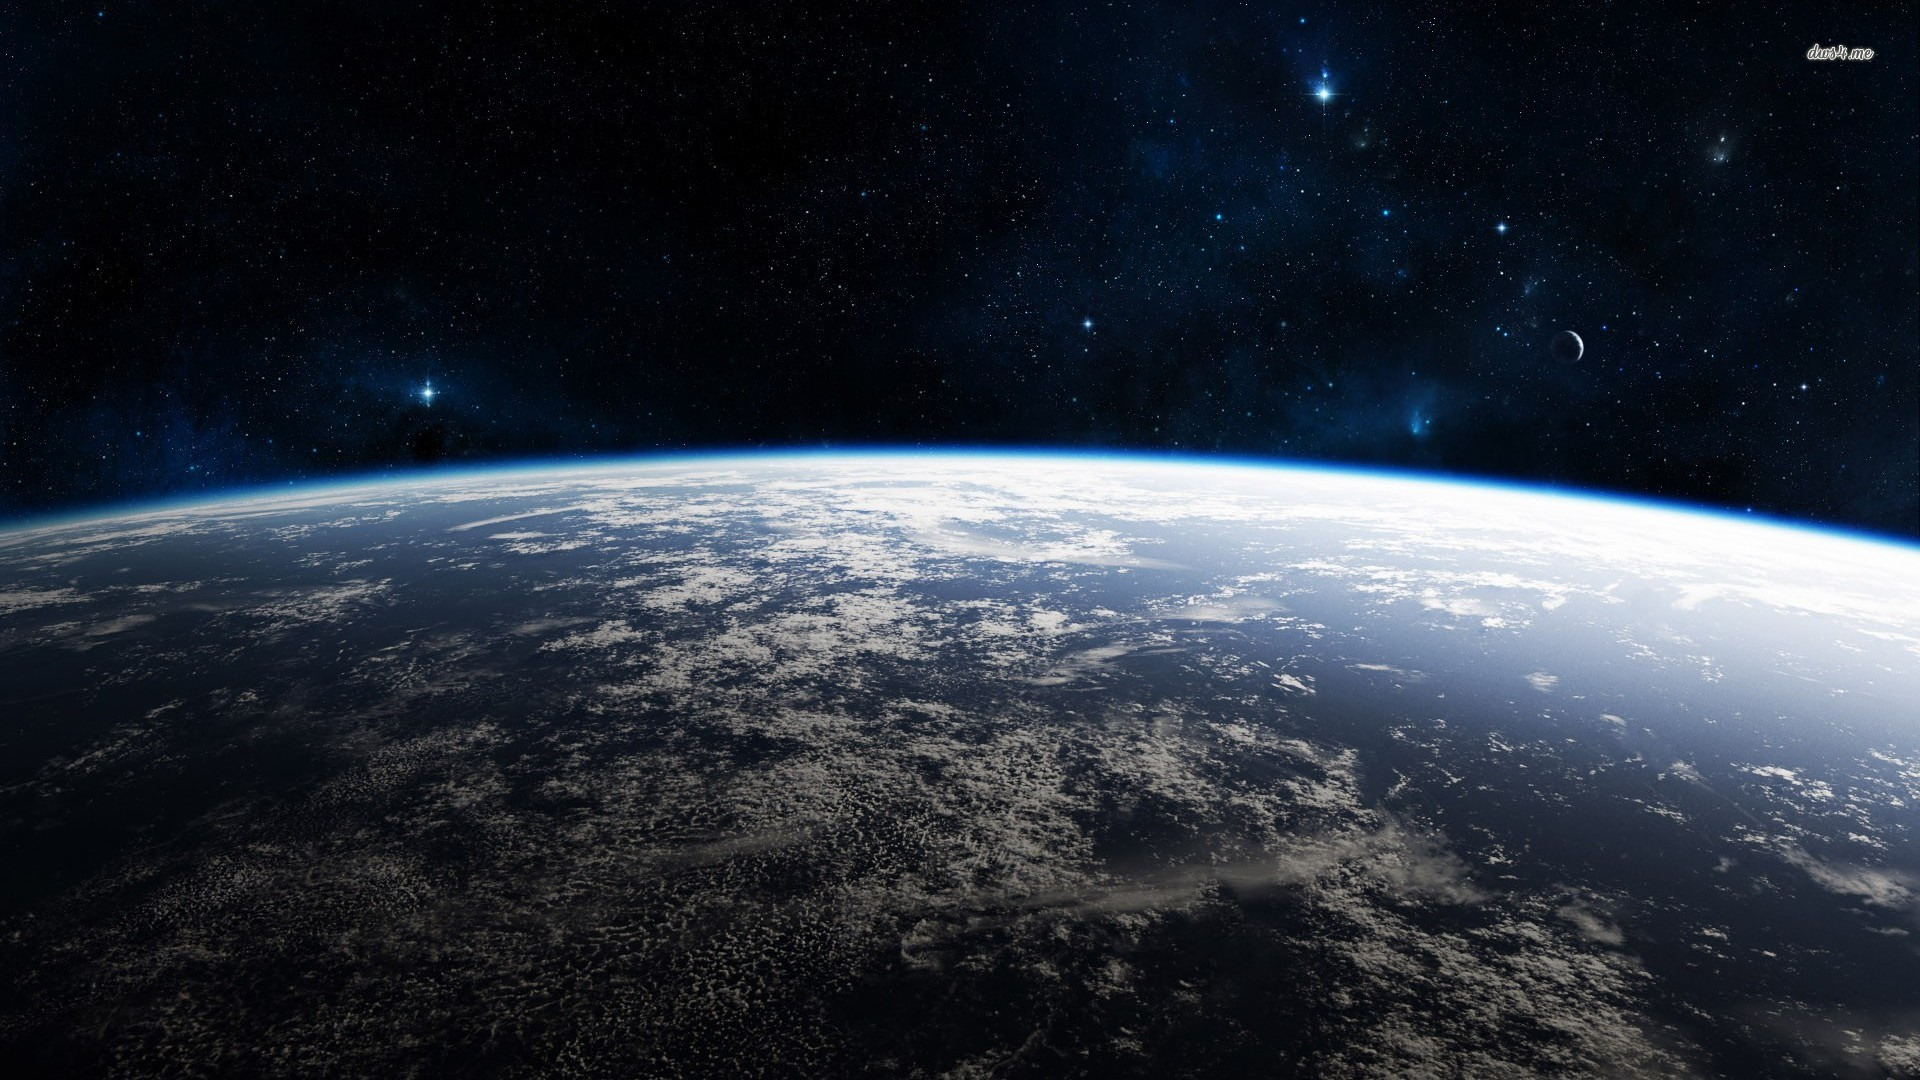 Fantastic Wallpaper Music Space - earth-from-space-hd-wallpaper-8  Collection_172460.jpg